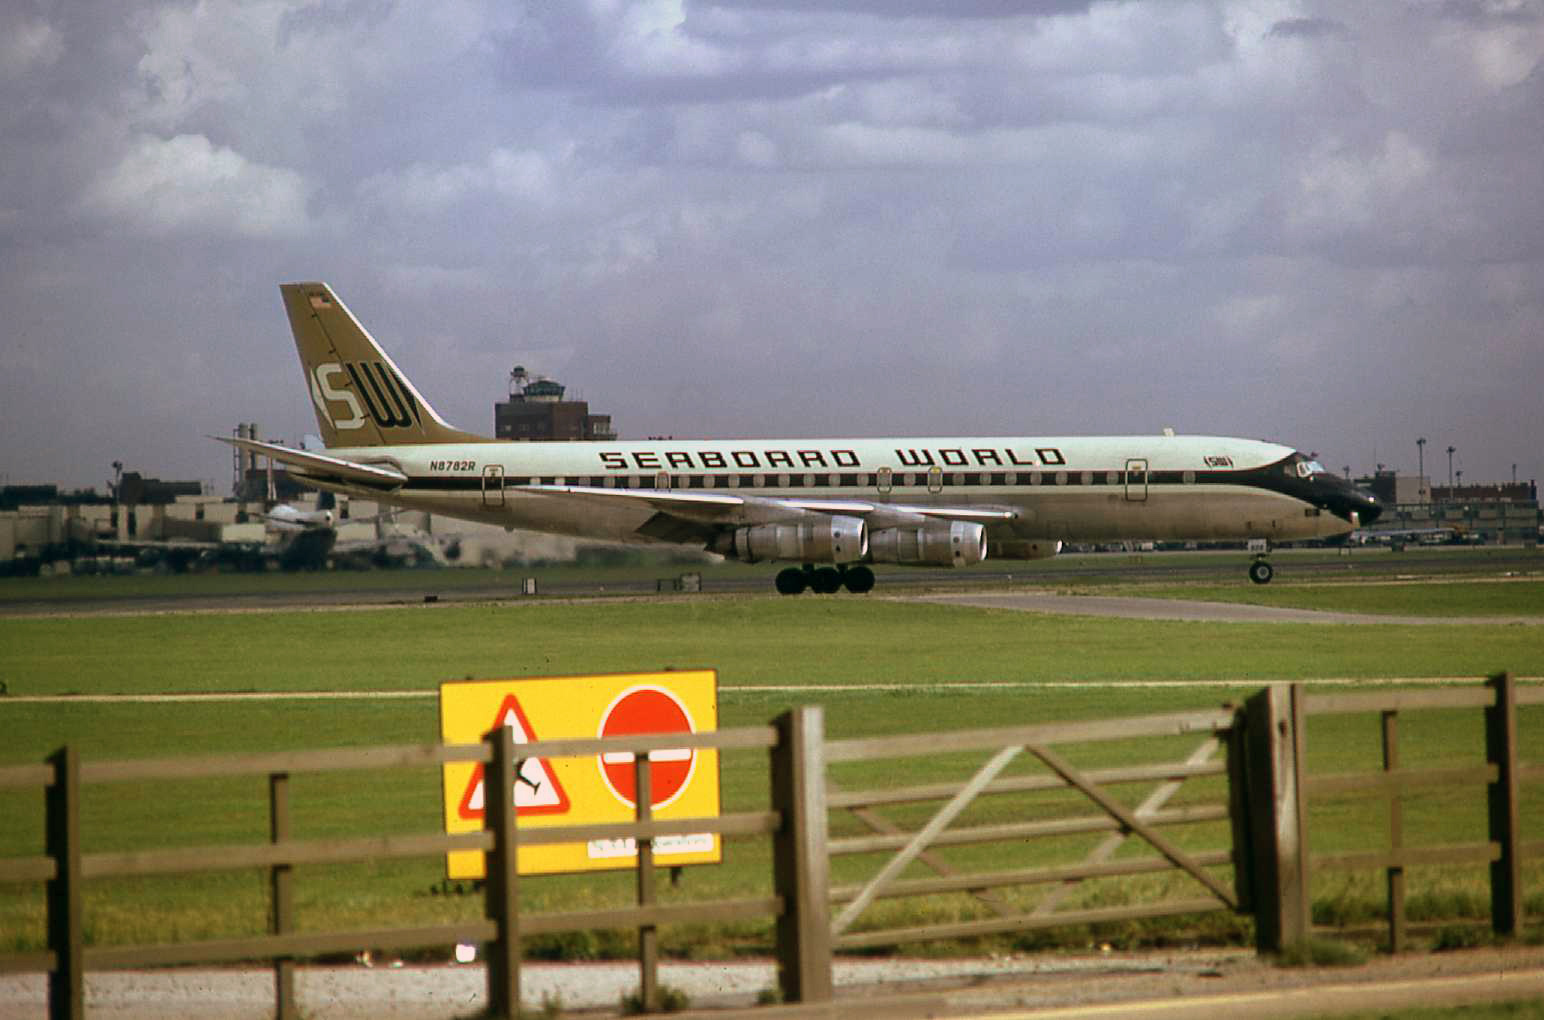 A good old Seaboard (Seaweed) DC8. Who would have thought? Heathrow airport in September 1974. I was Parked up along side the security fence at the time. Reminding us that things never remain the same and as enthusiasts / photographers we have to make the most of what we have at a particular time…the RVP and Manchester Southside perhaps being the points in question at this very time?